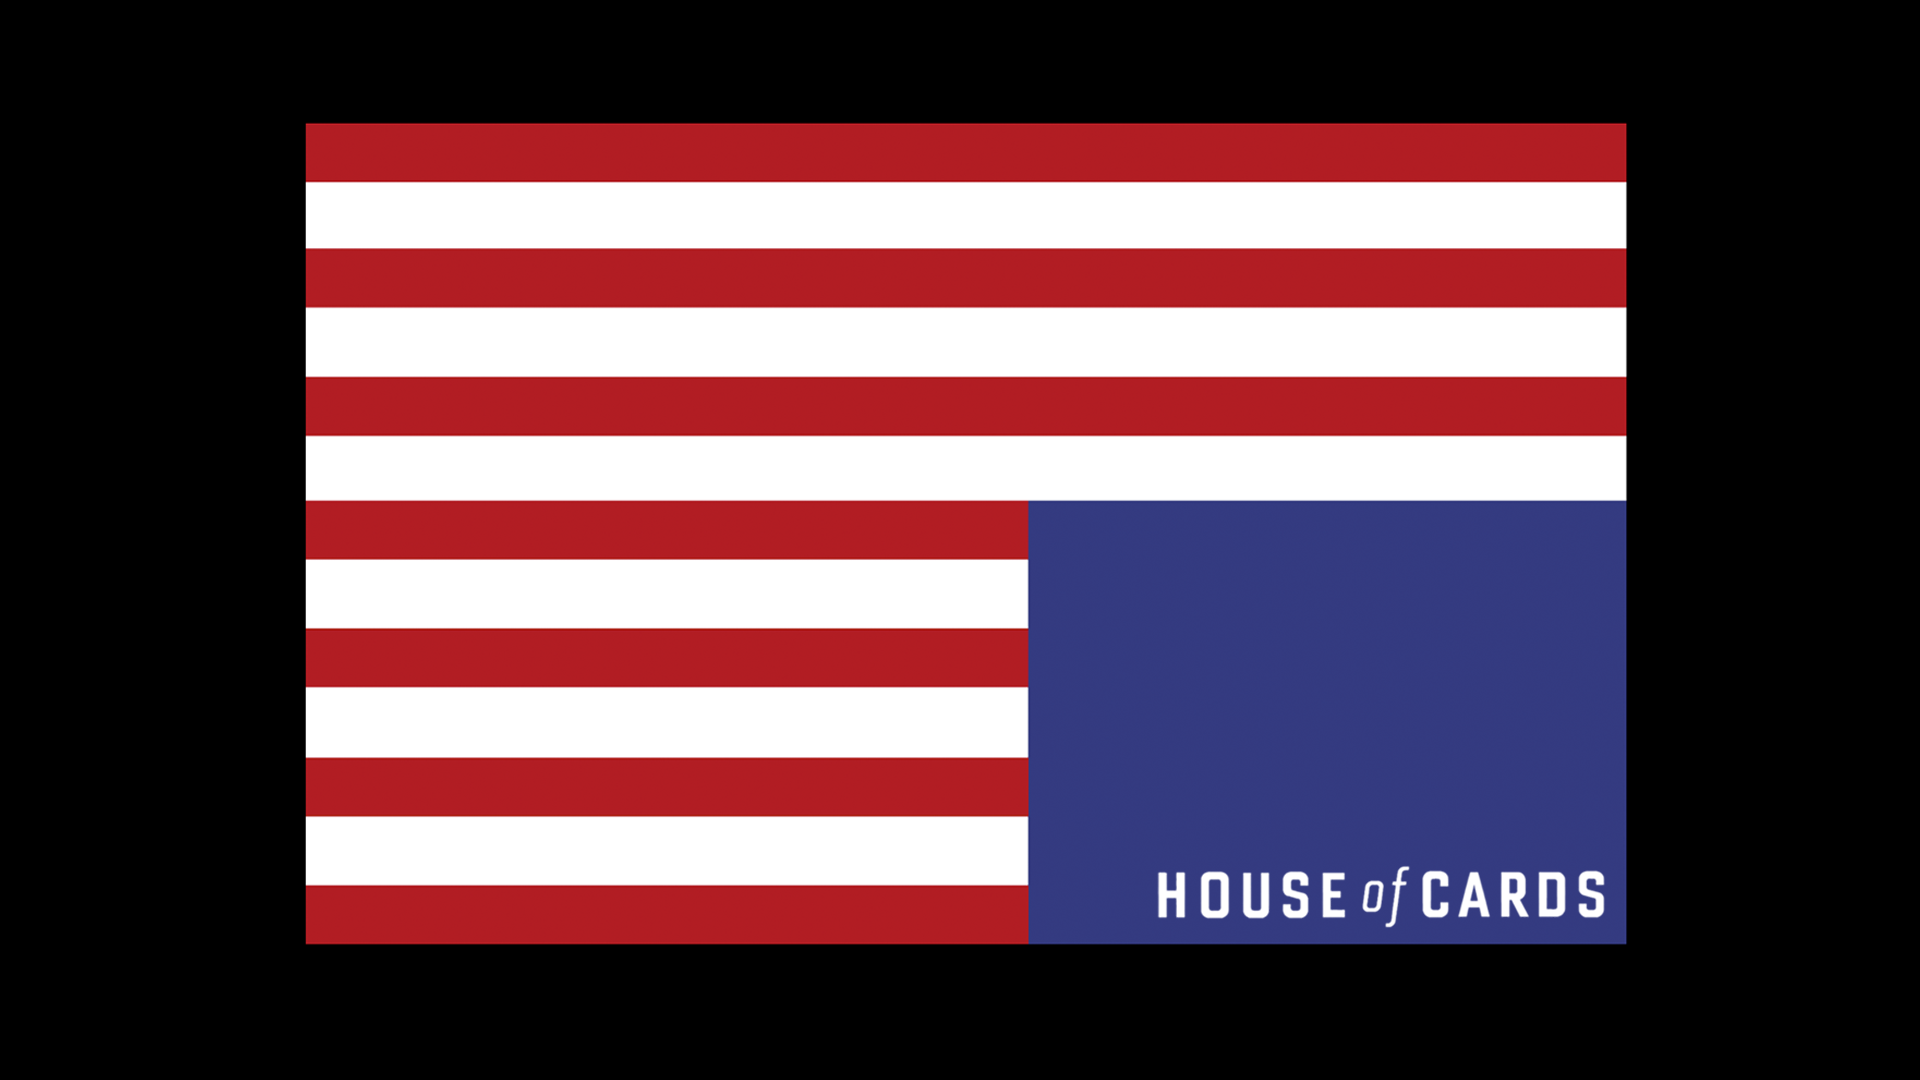 Minimalistic House Of Cards Wallpaper Houseofcards